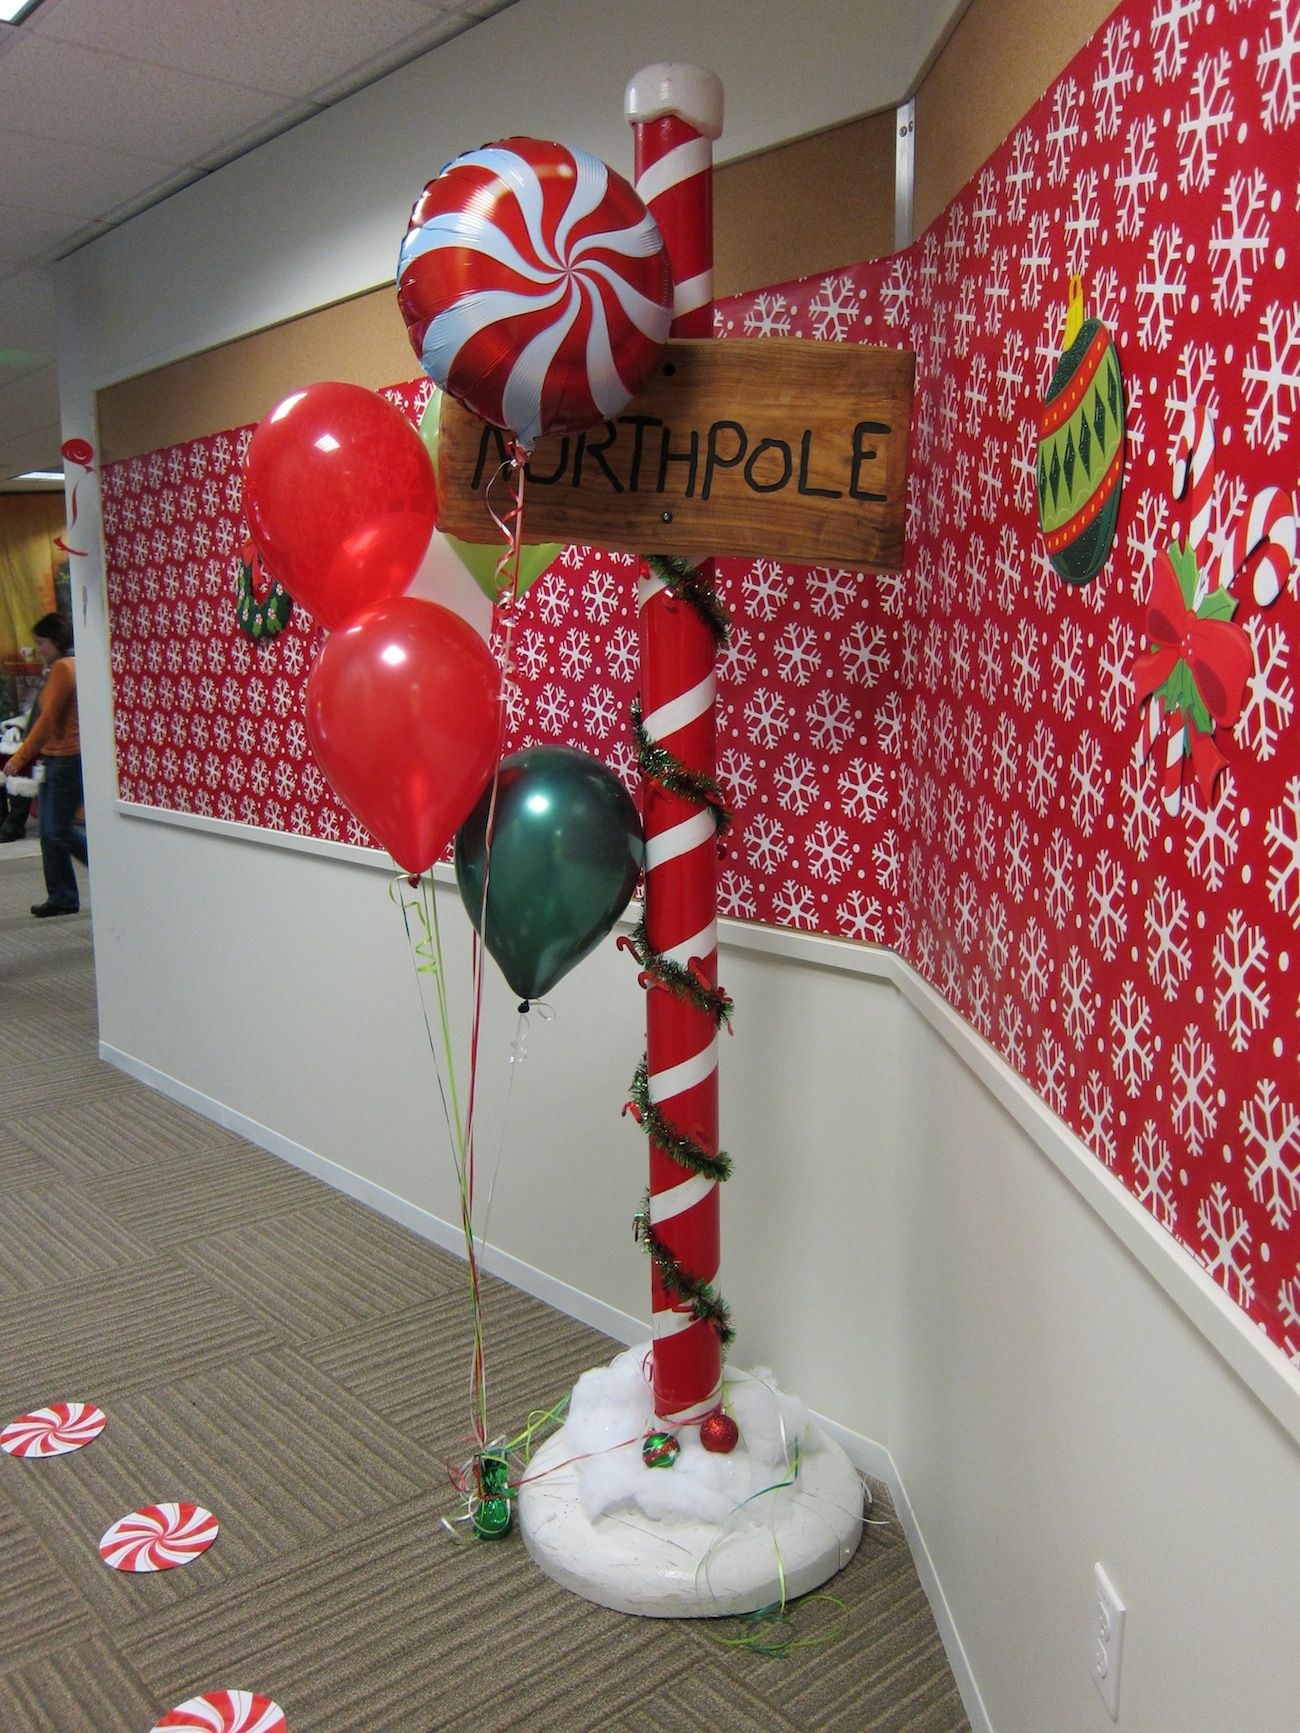 North pole decor first birthday party ideas pinterest for Special xmas decorations